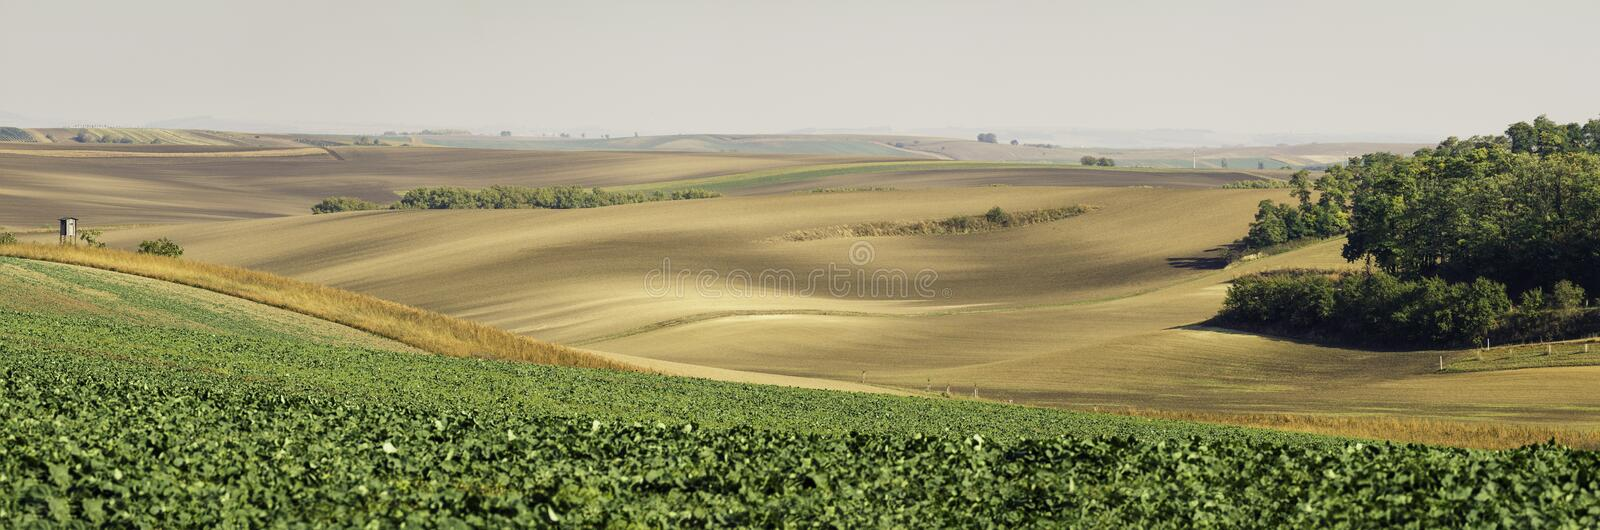 Moravian Fields. Panoramic view of cultivated field in South Moravia, Czechia. Beautiful wavy fields royalty free stock photos